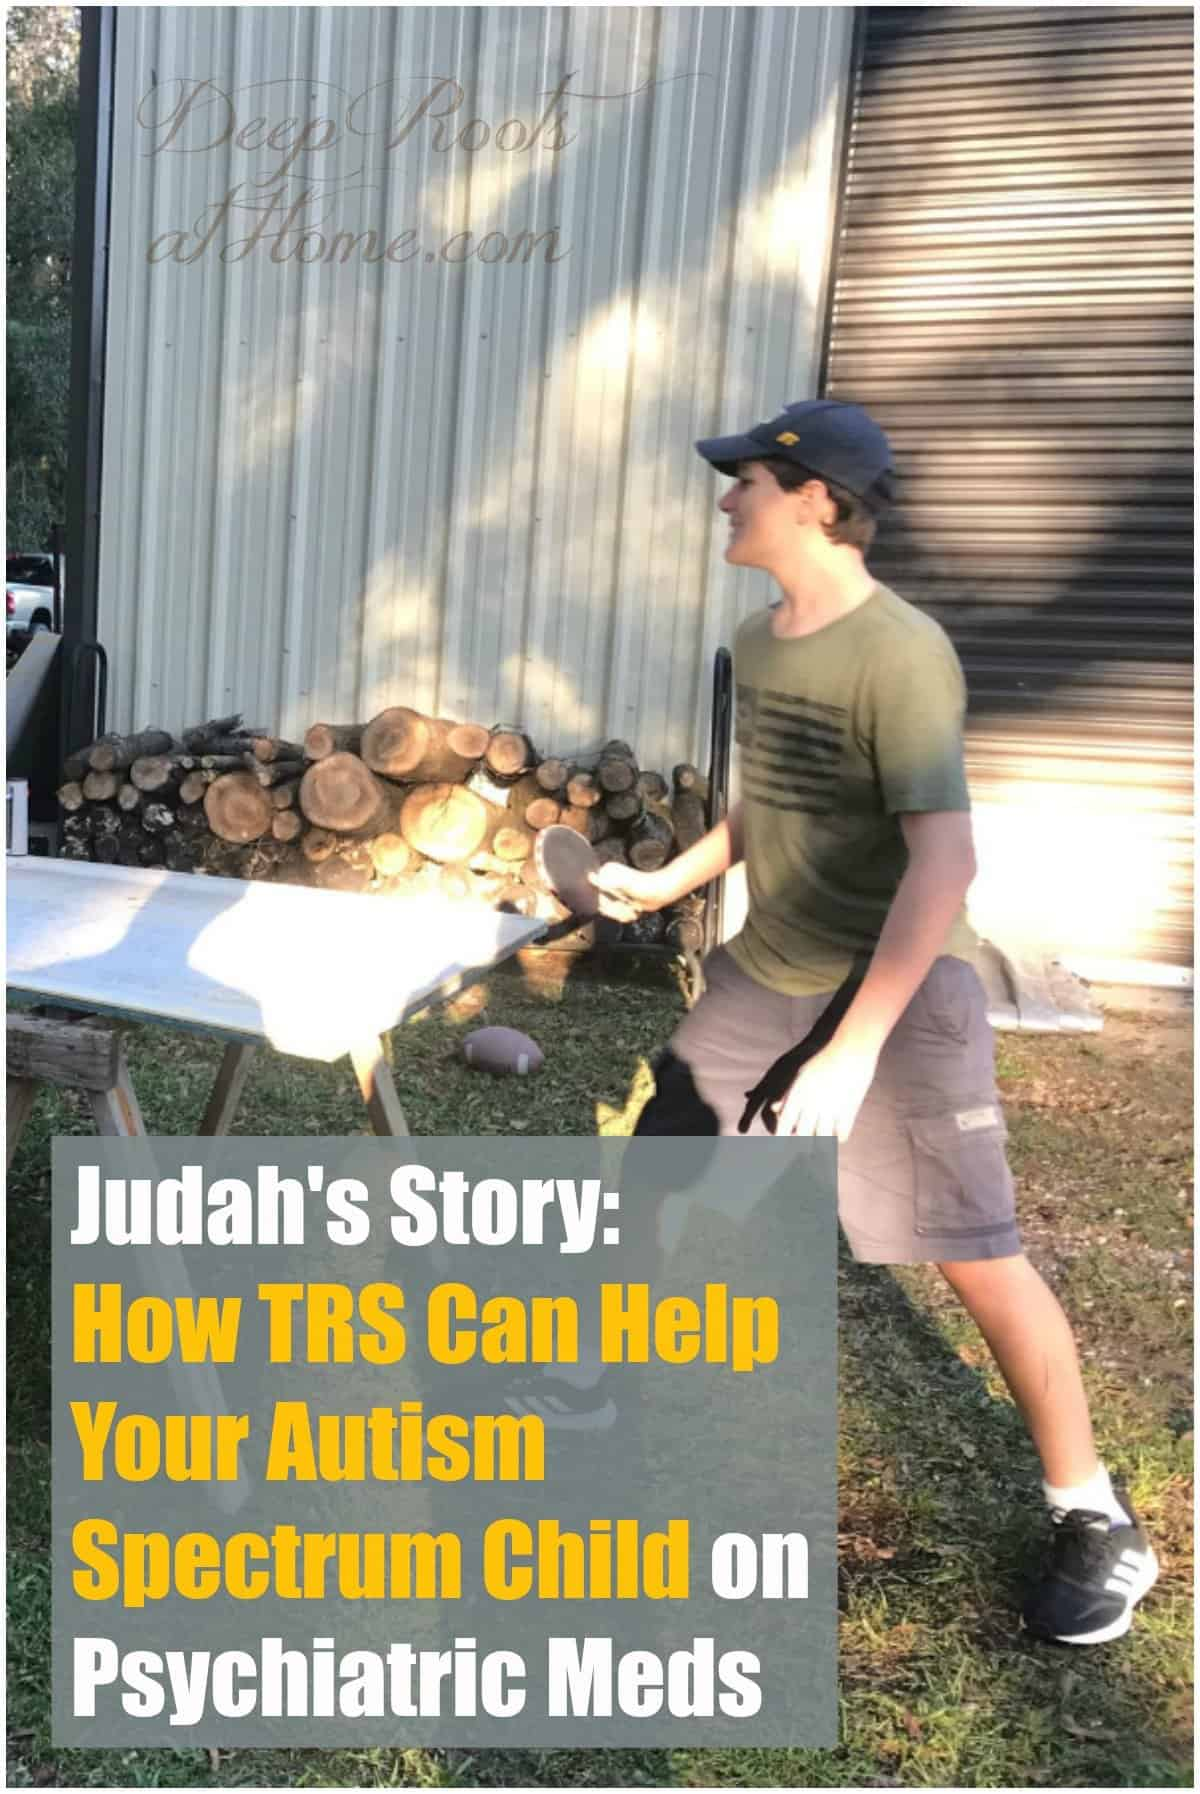 Judah's Story: How TRS Can Help Your ASD Child on Psychiatric Meds. playing ping pong